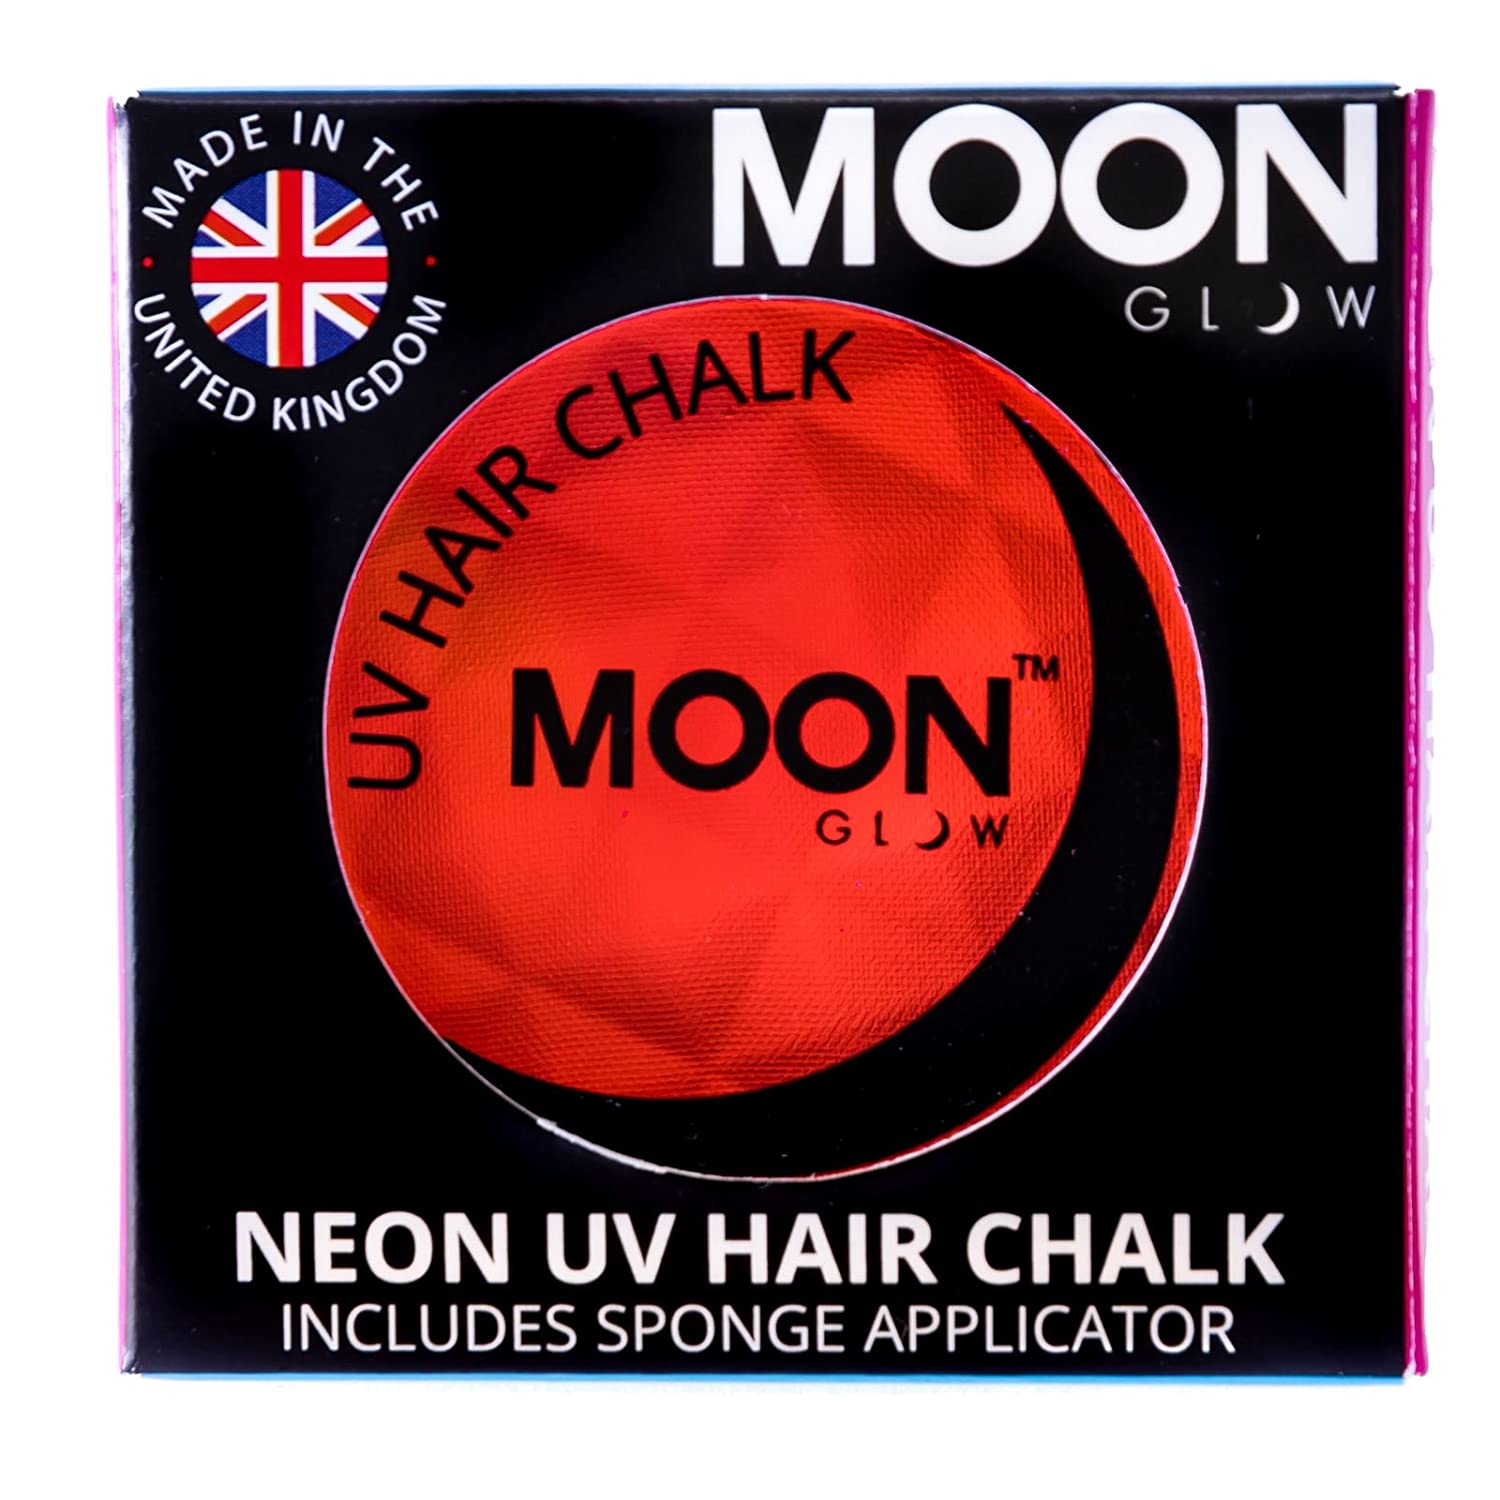 Moon Glow - Neon UV Hair Chalk 3.5g Green – Glows brightly under UV Lighting!